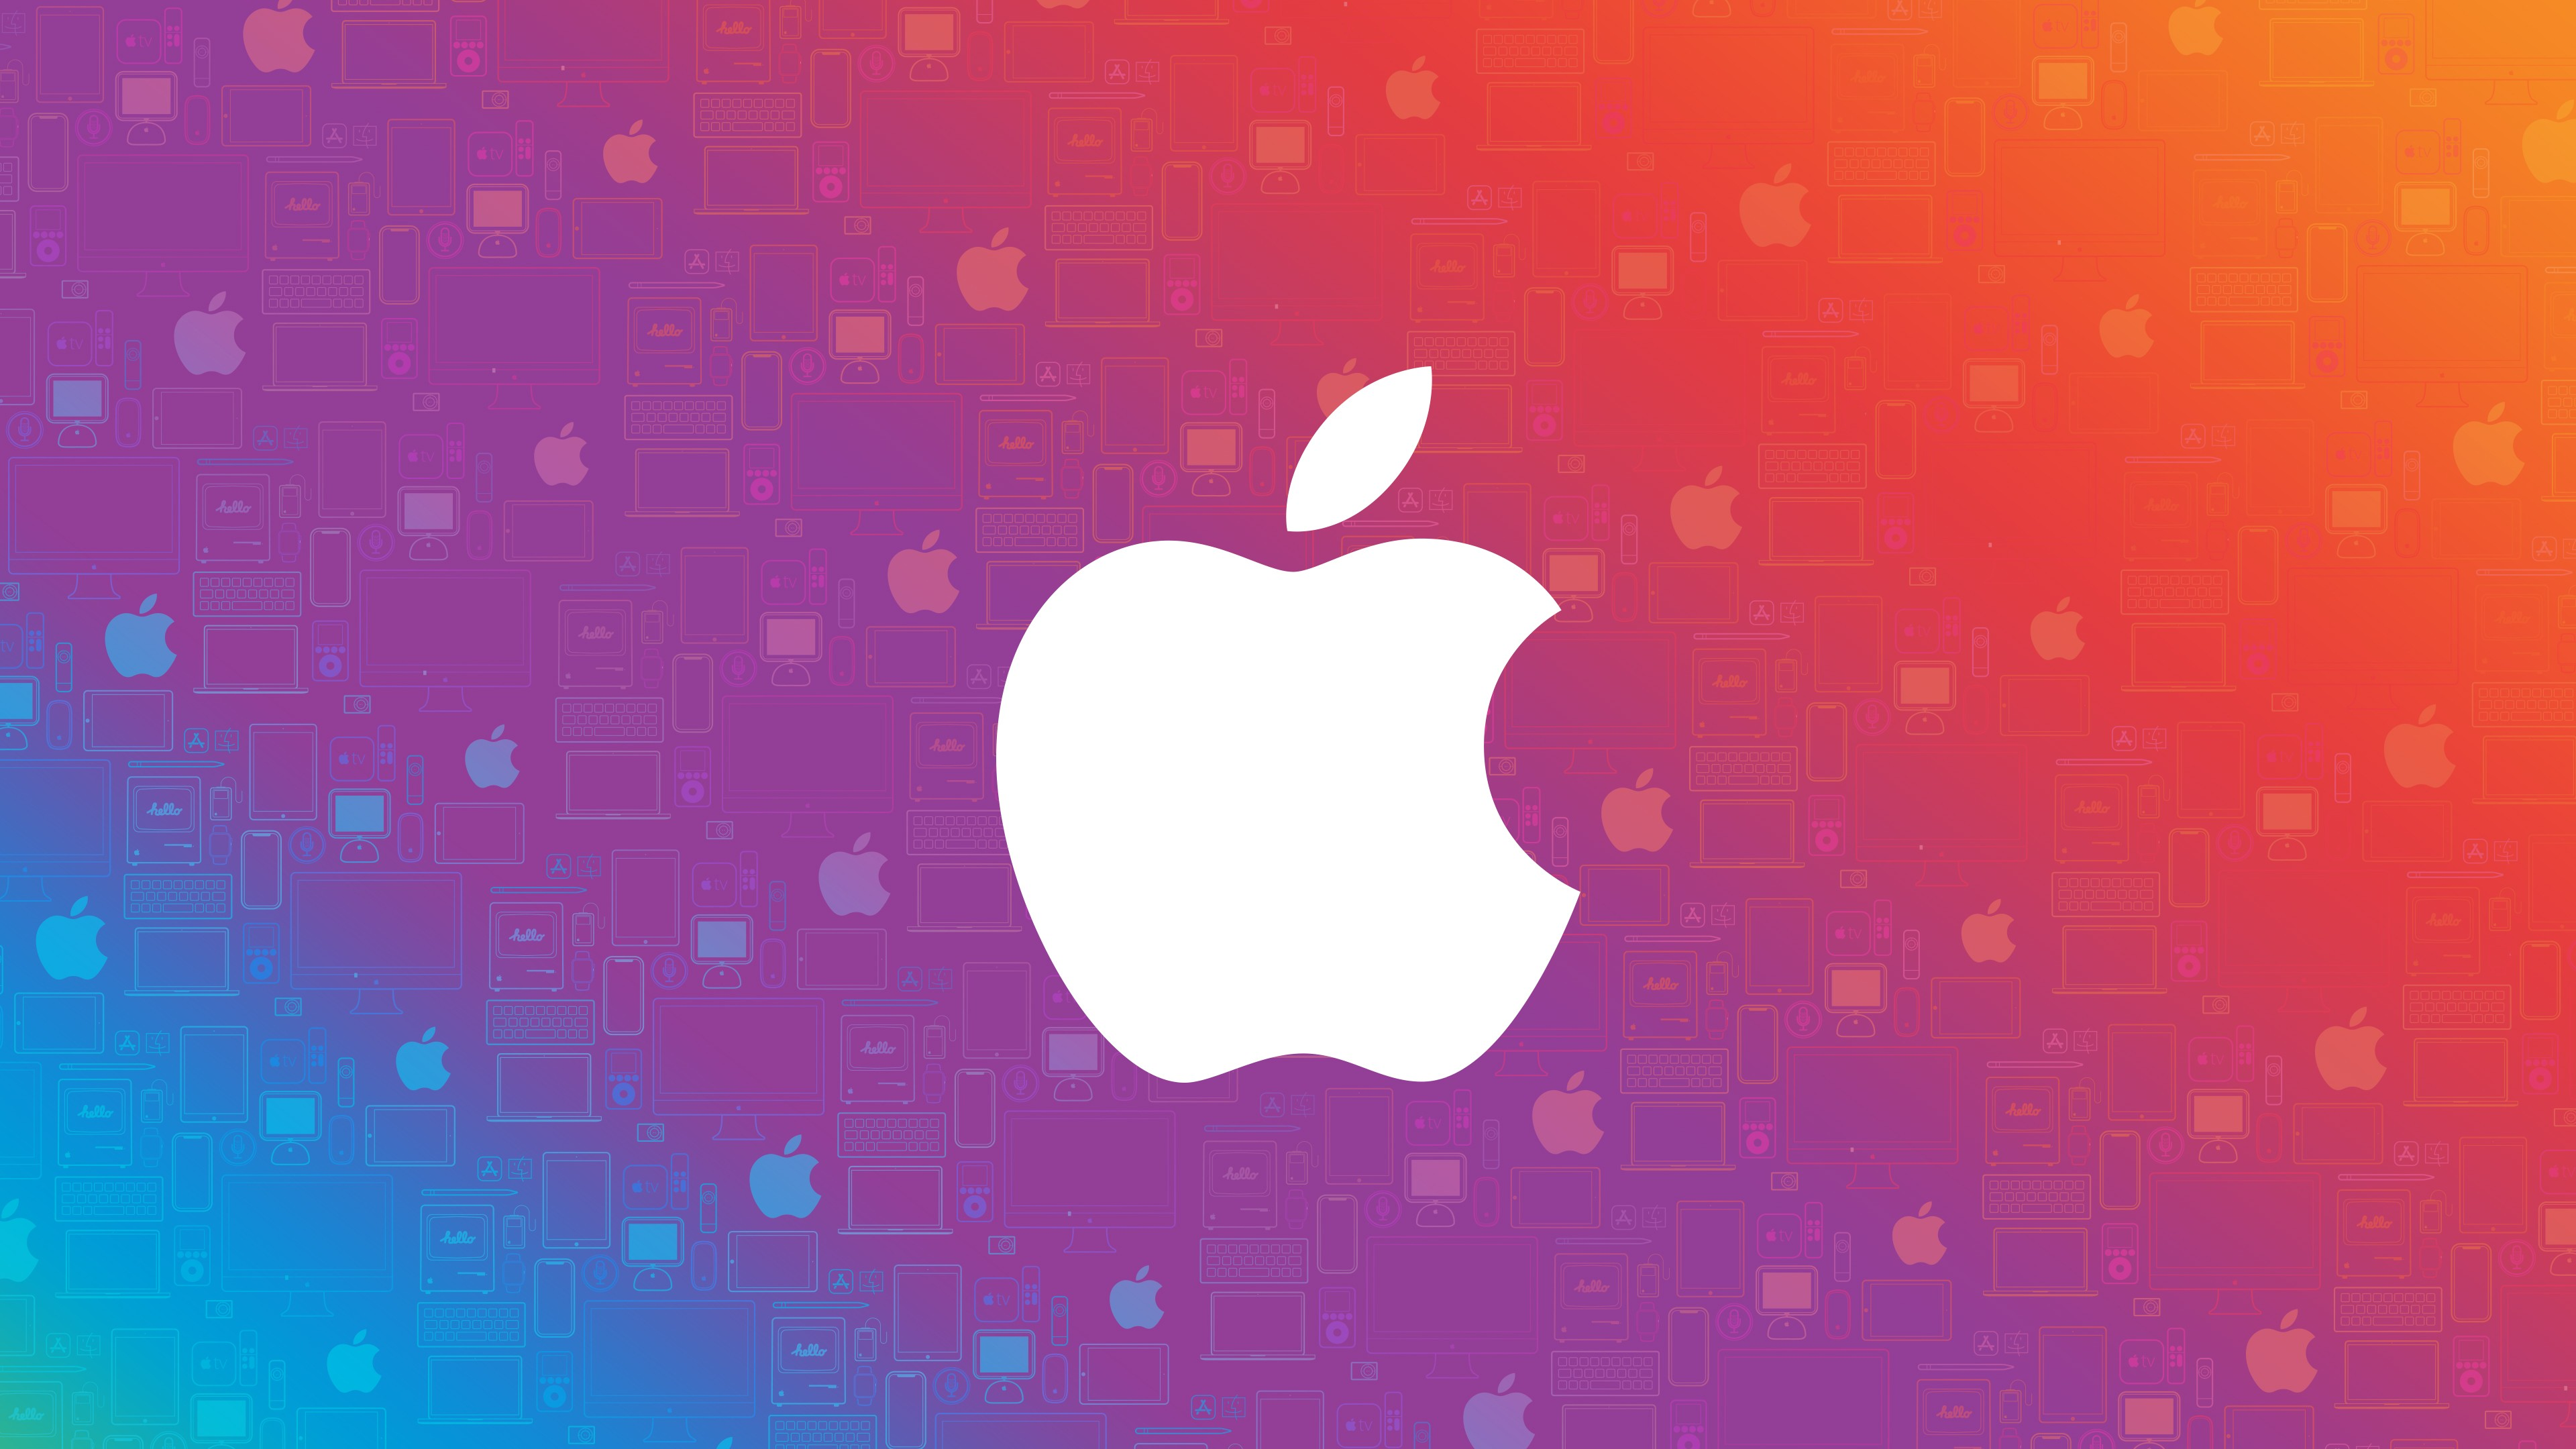 Apple Logo Wallpaper HD 4k 3840x2160